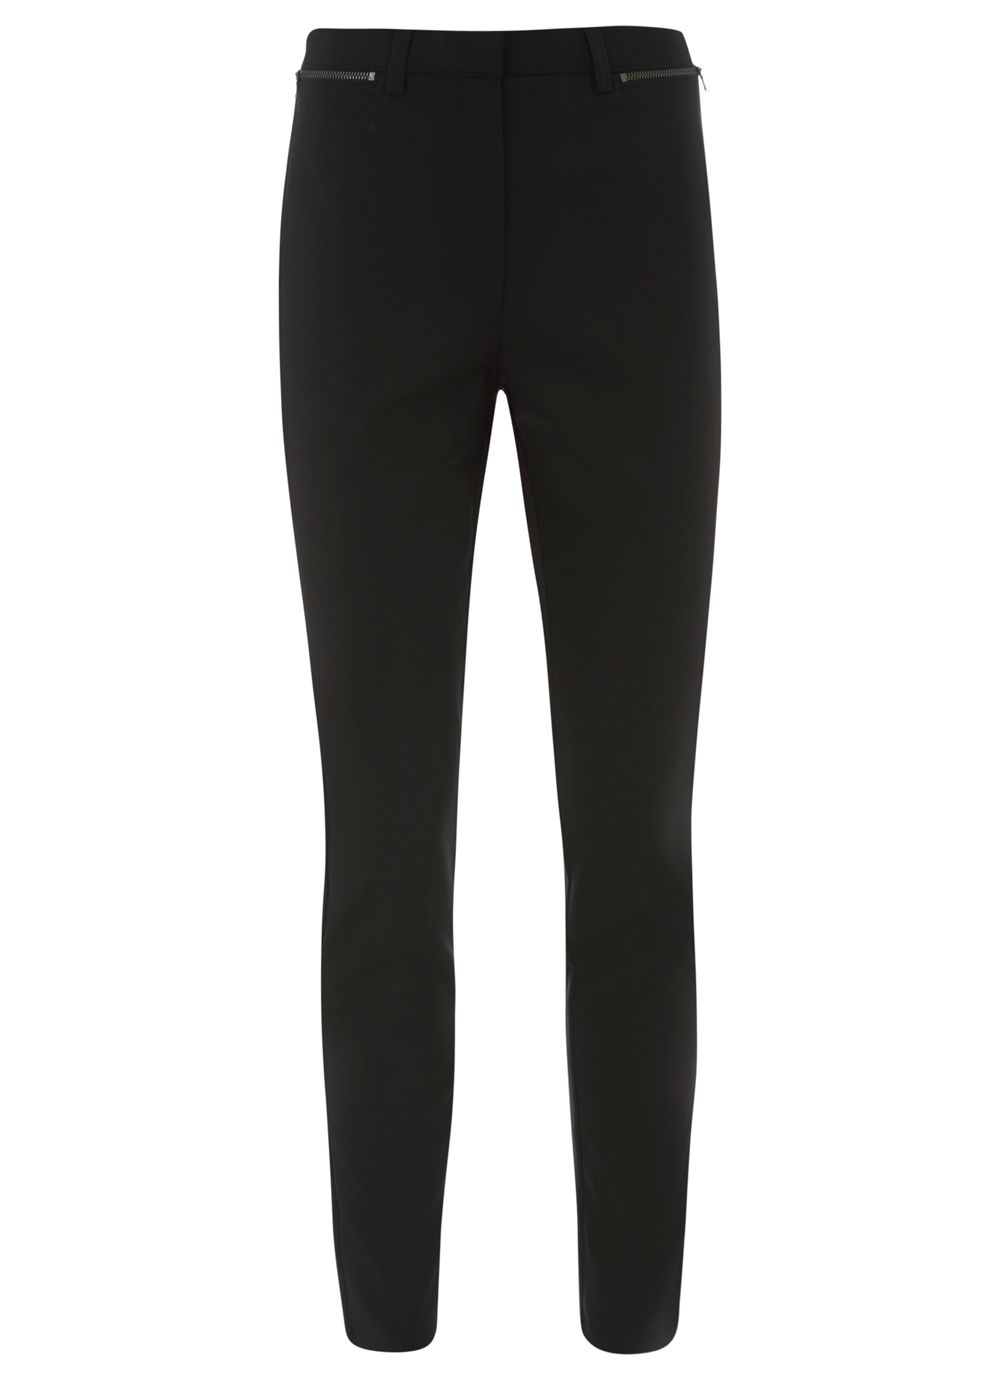 Black Zip Skinny Trouser